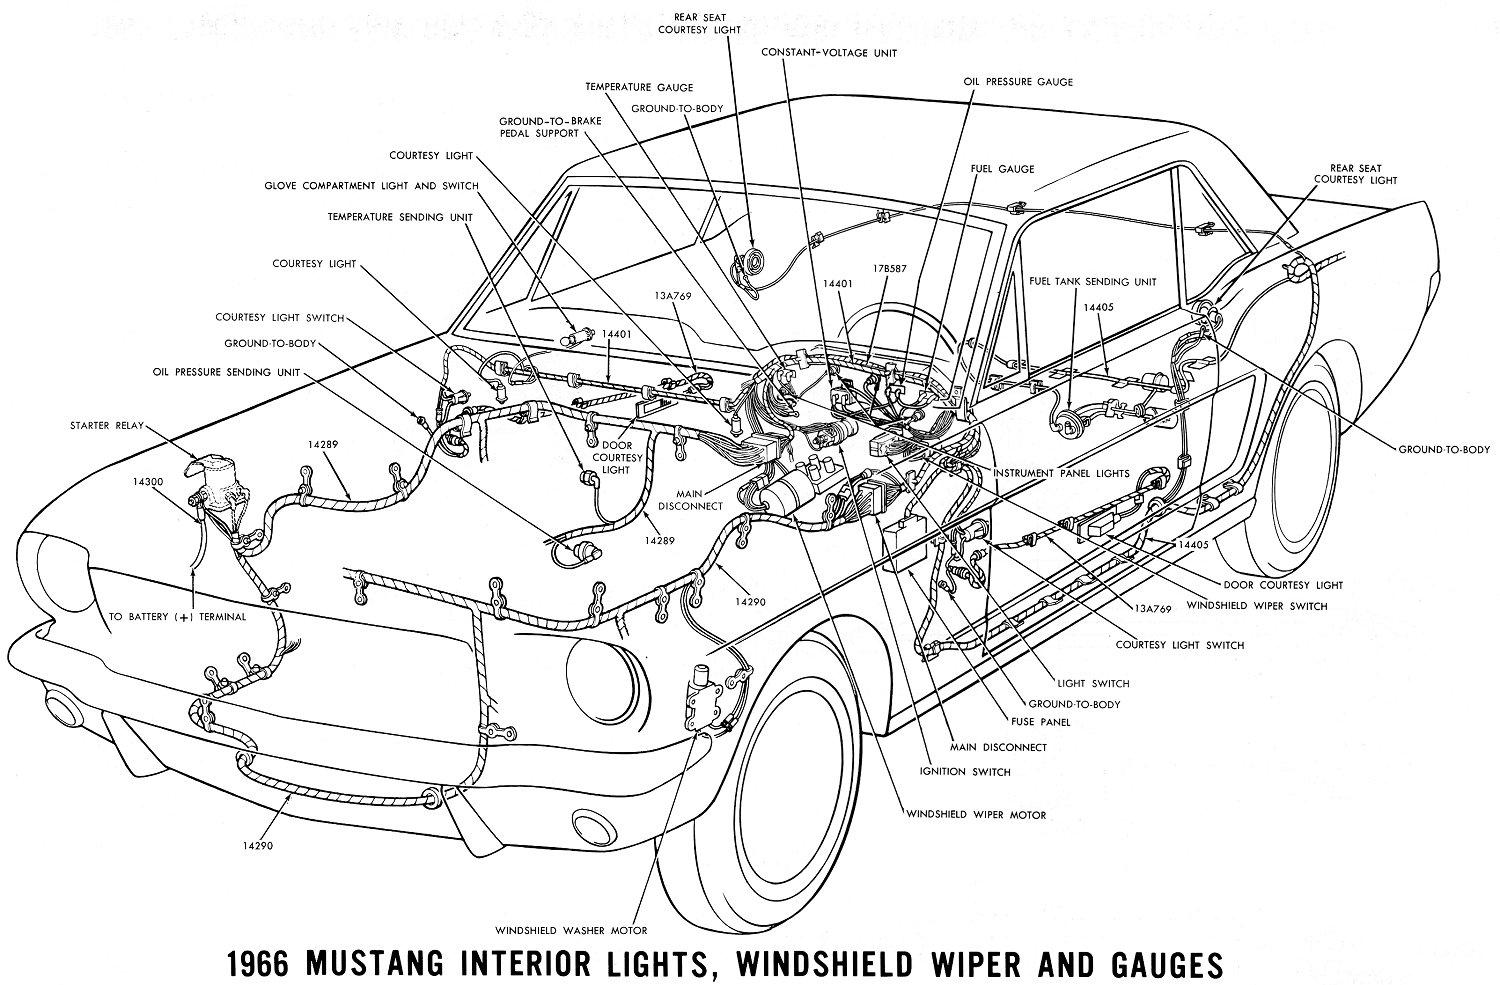 hight resolution of 1966 mustang interior lights windshield wiper and gauges schema